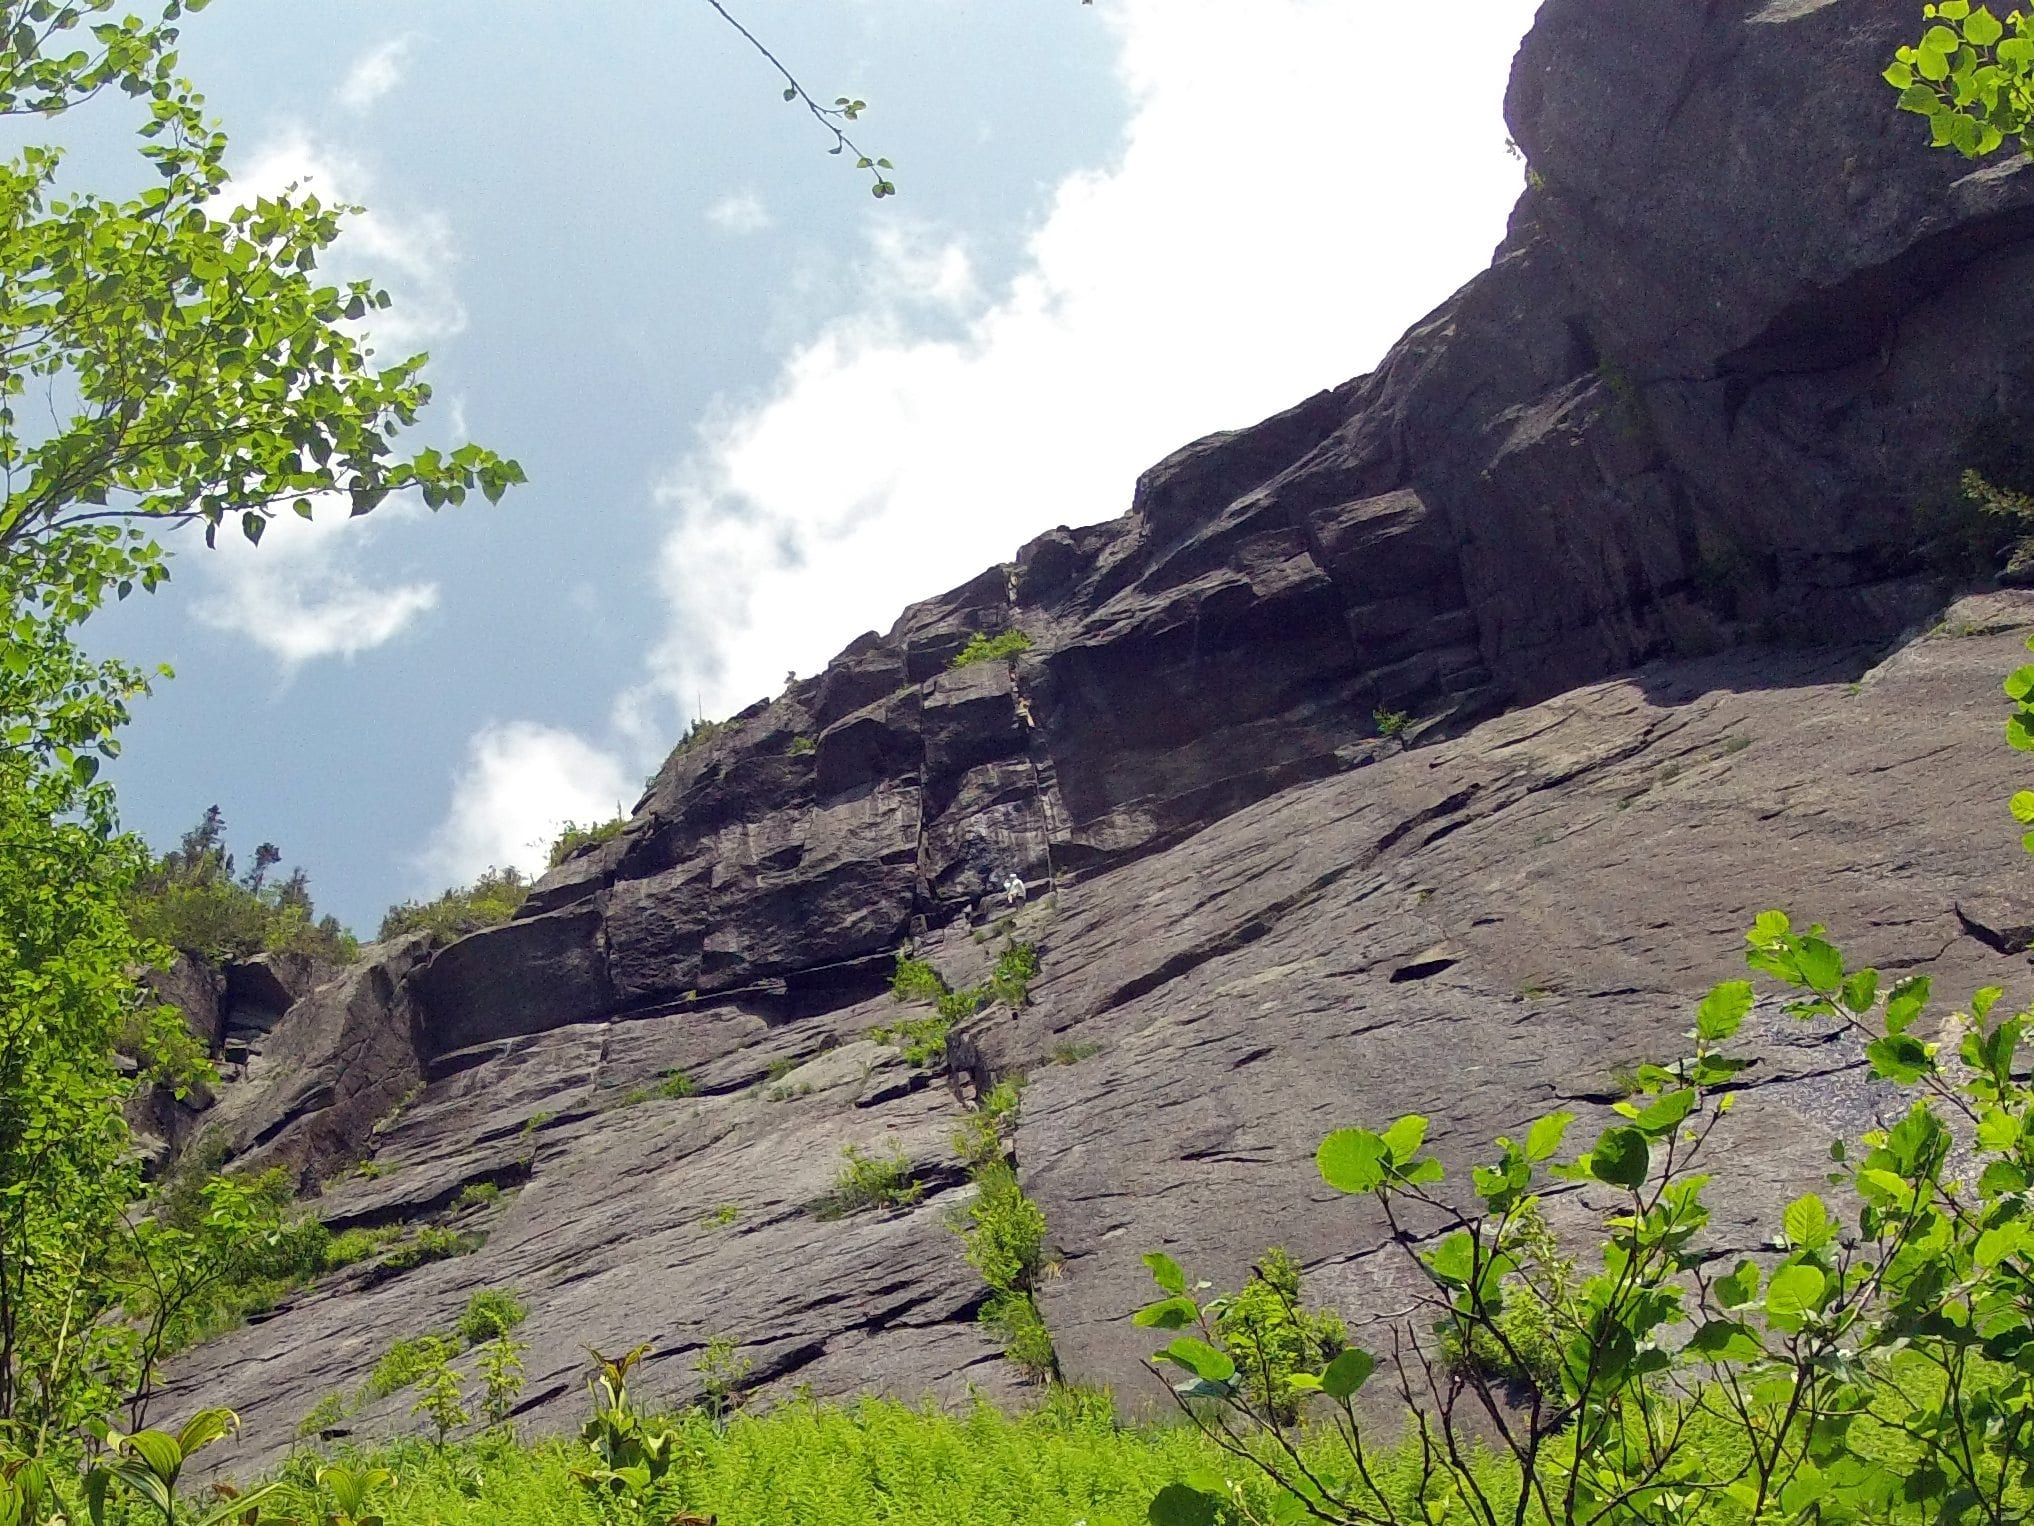 Rock Climbing: A New Route Deep In Panther Gorge